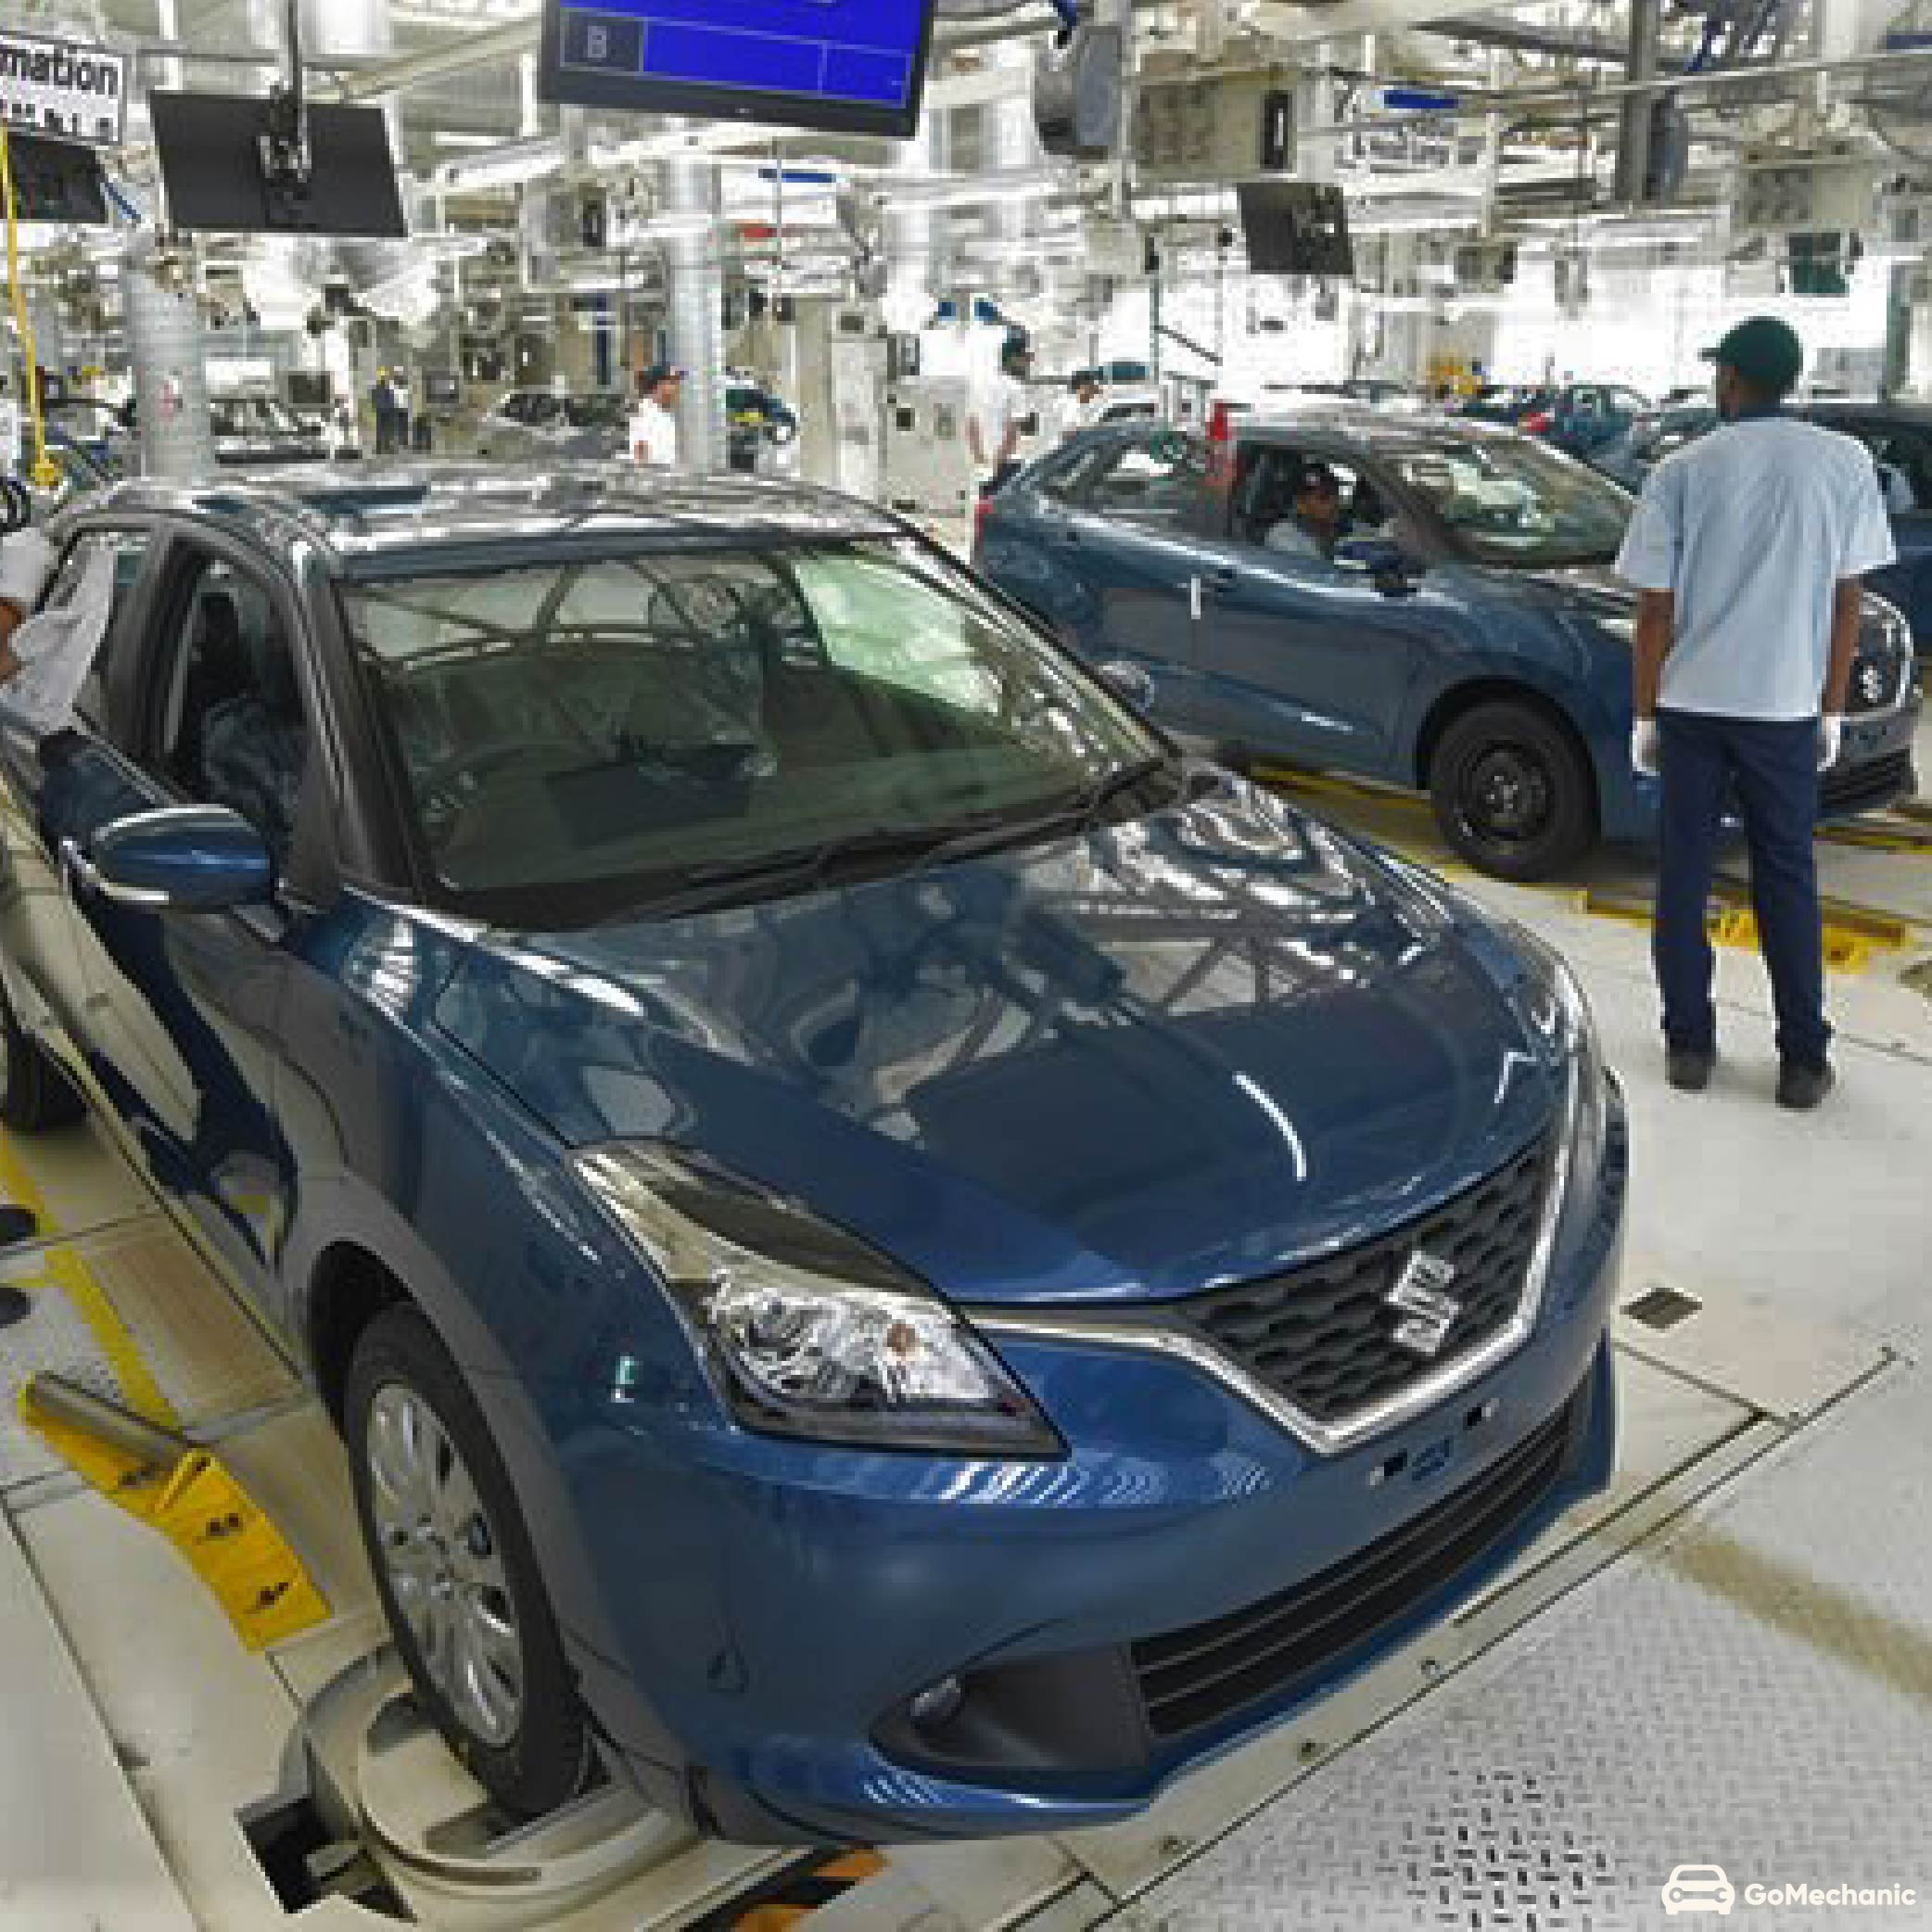 Maruti Suzuki Halting Production